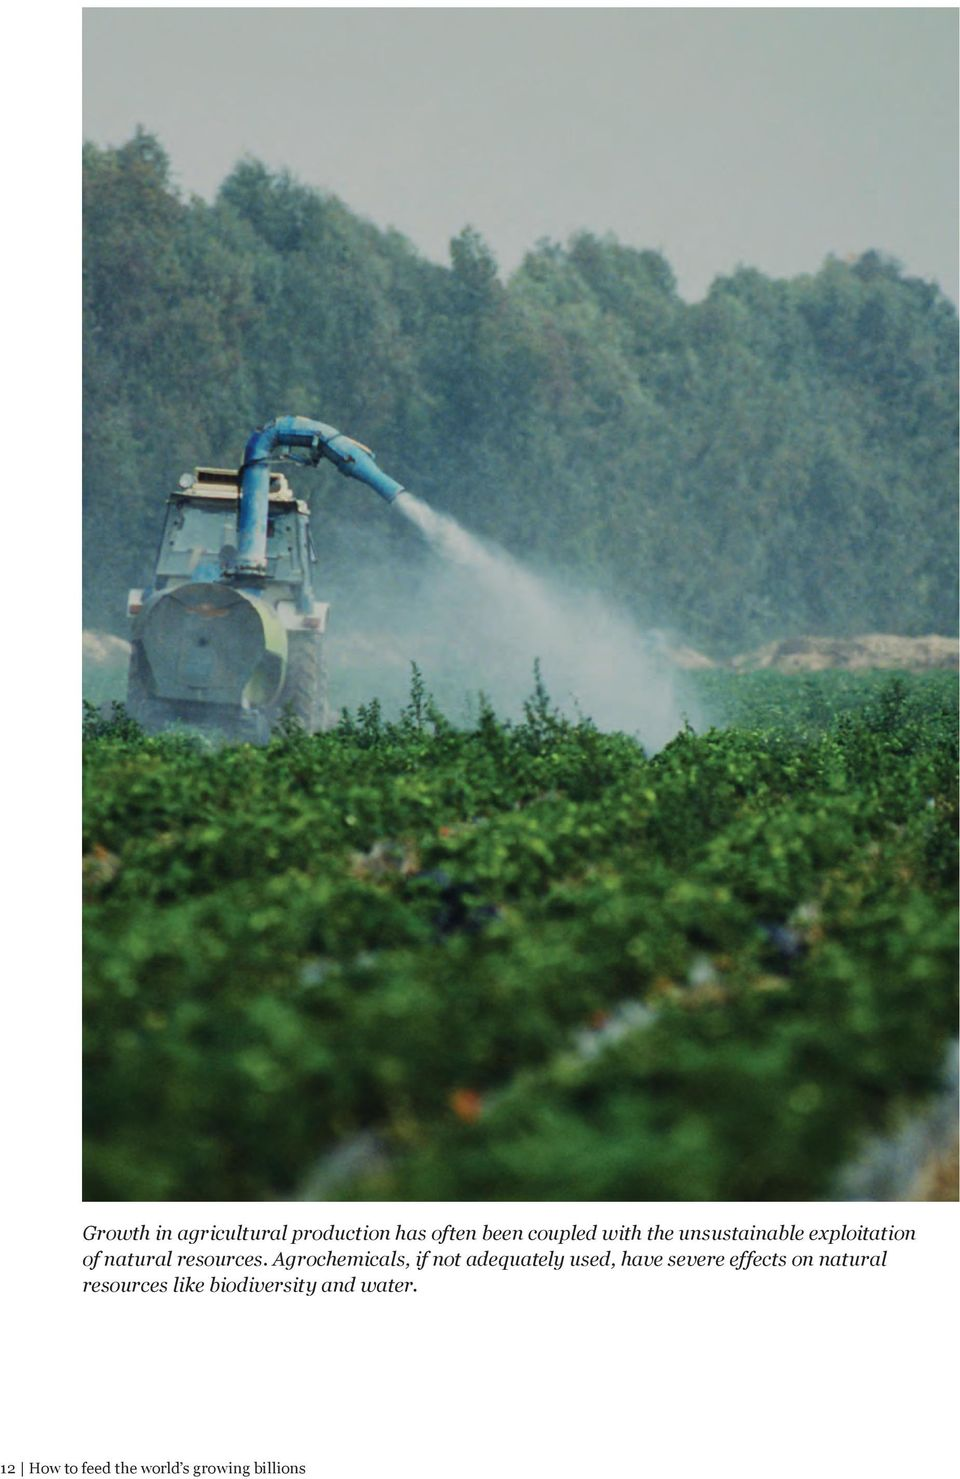 Agrochemicals, if not adequately used, have severe effects on